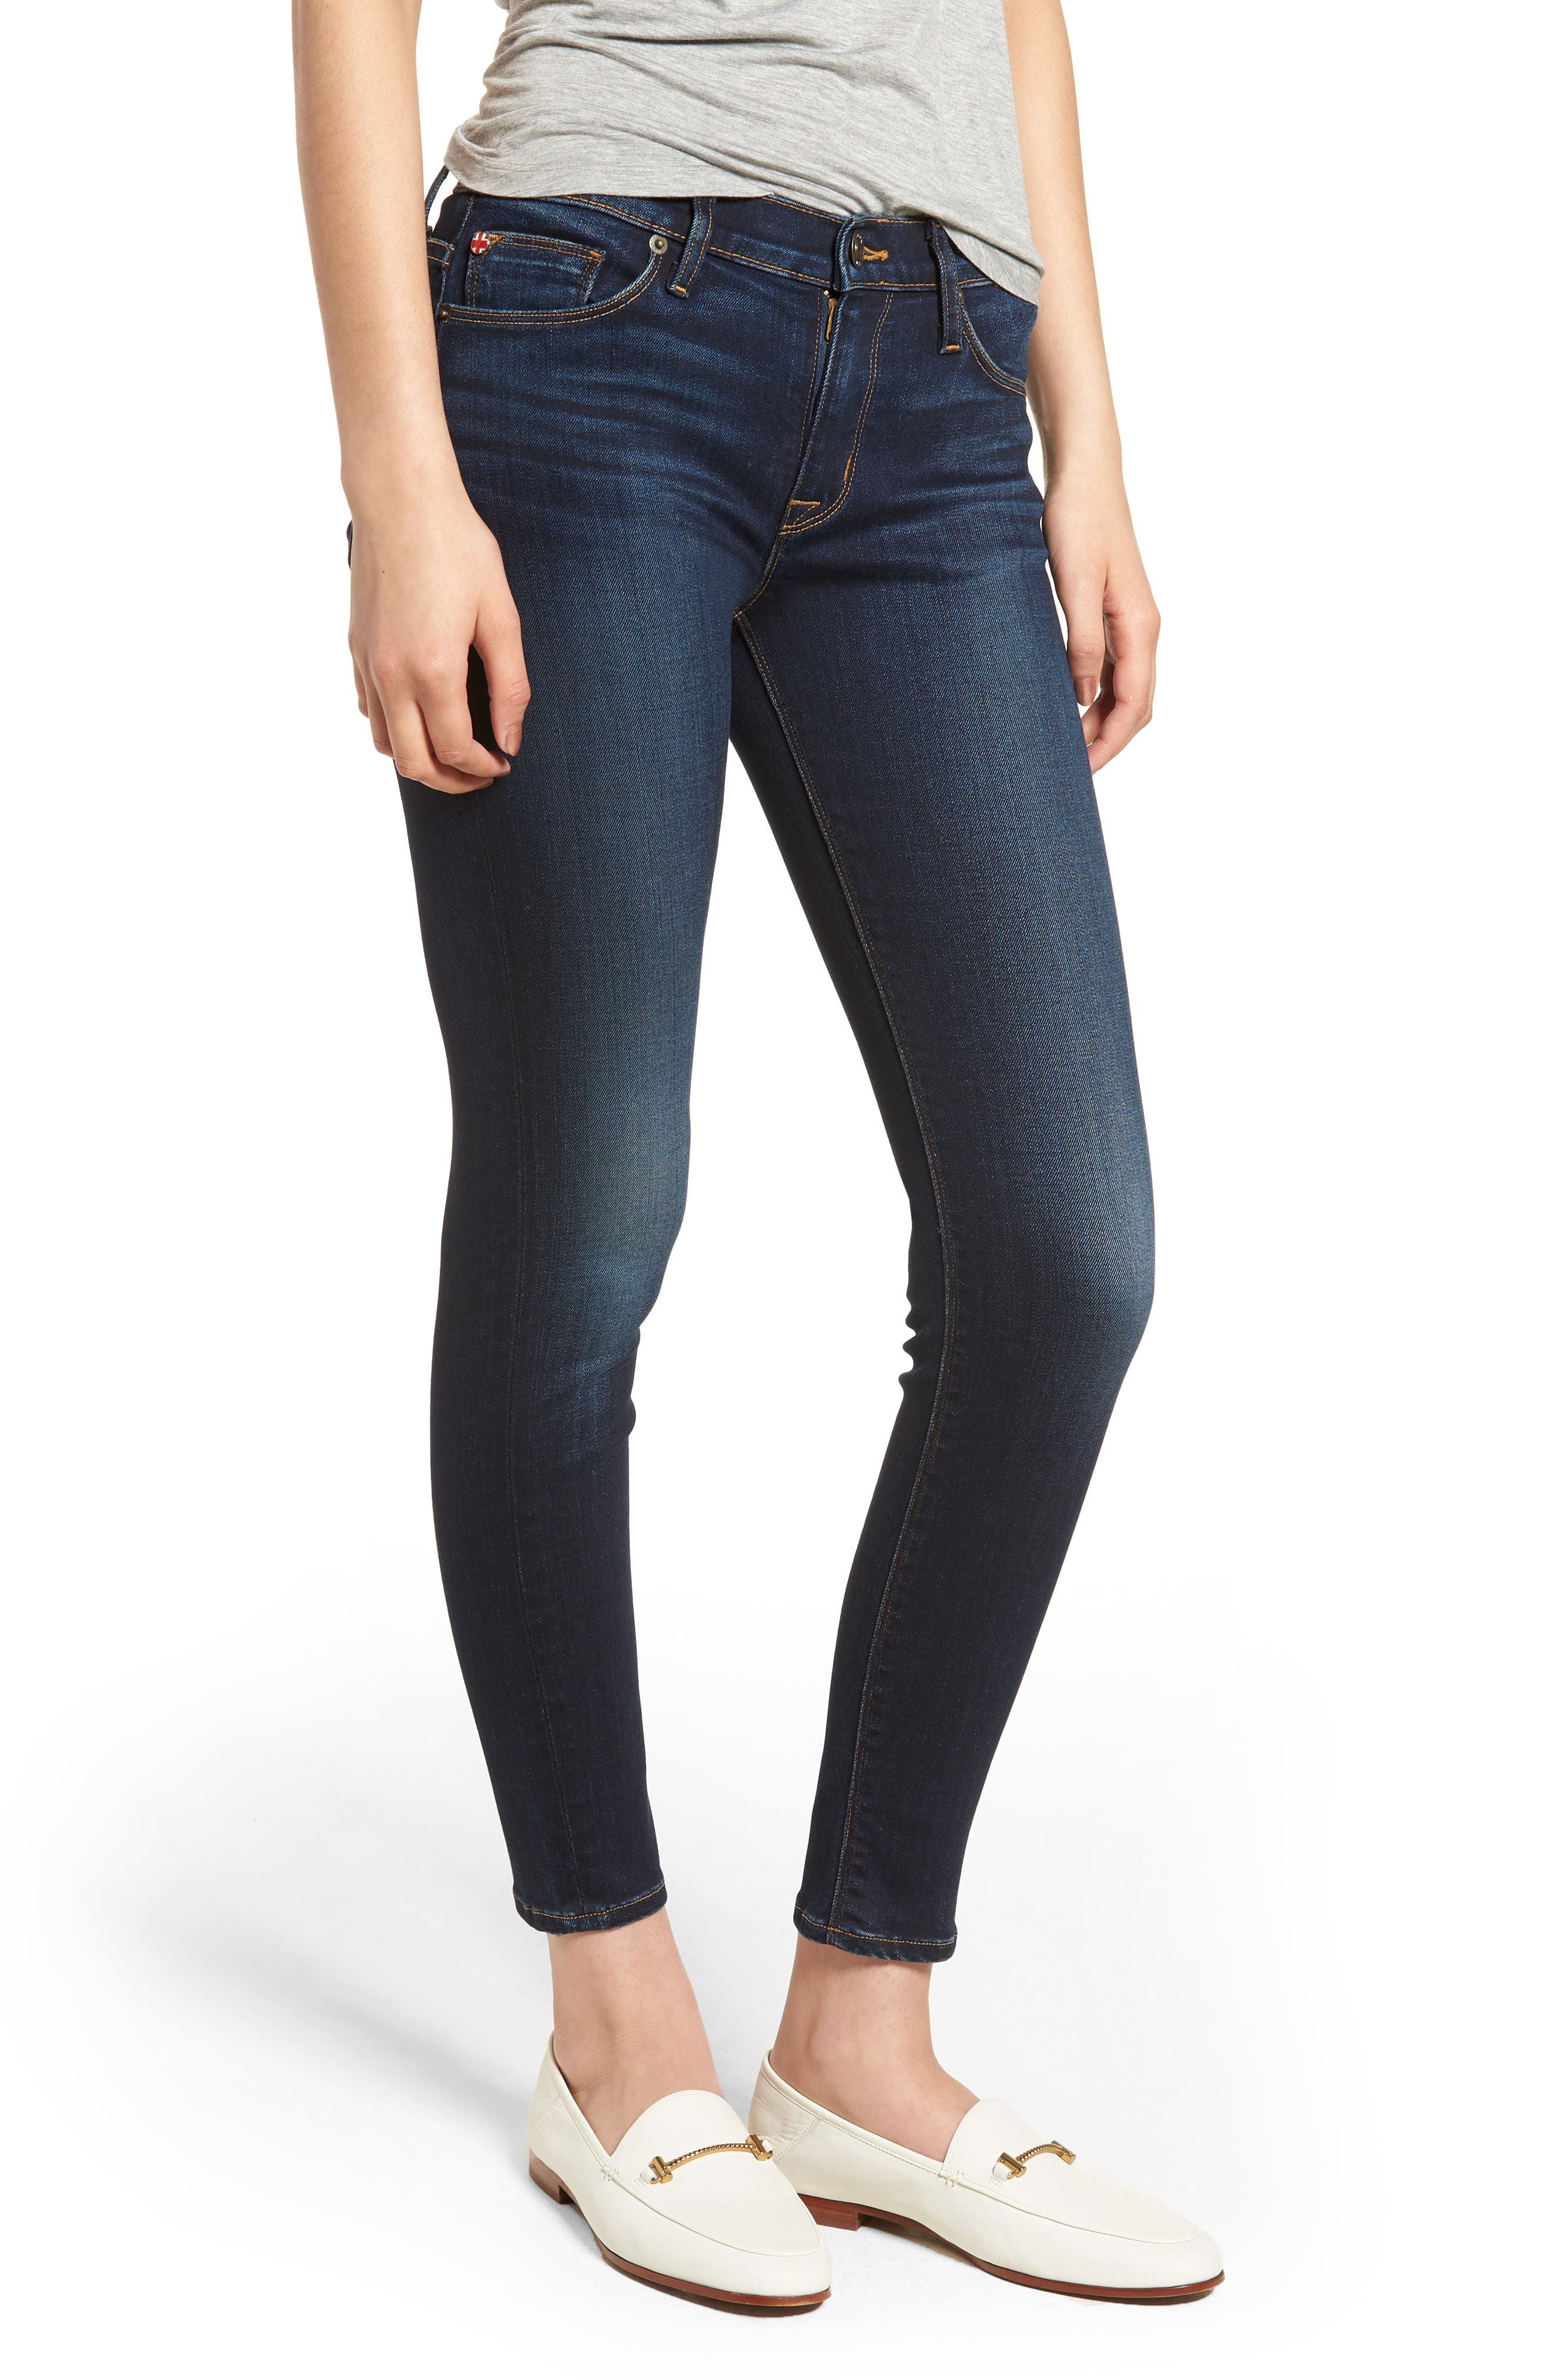 'Nico' Ankle Skinny Jeans (Calvary)<br />,                             Main thumbnail 1, color,                             Corps